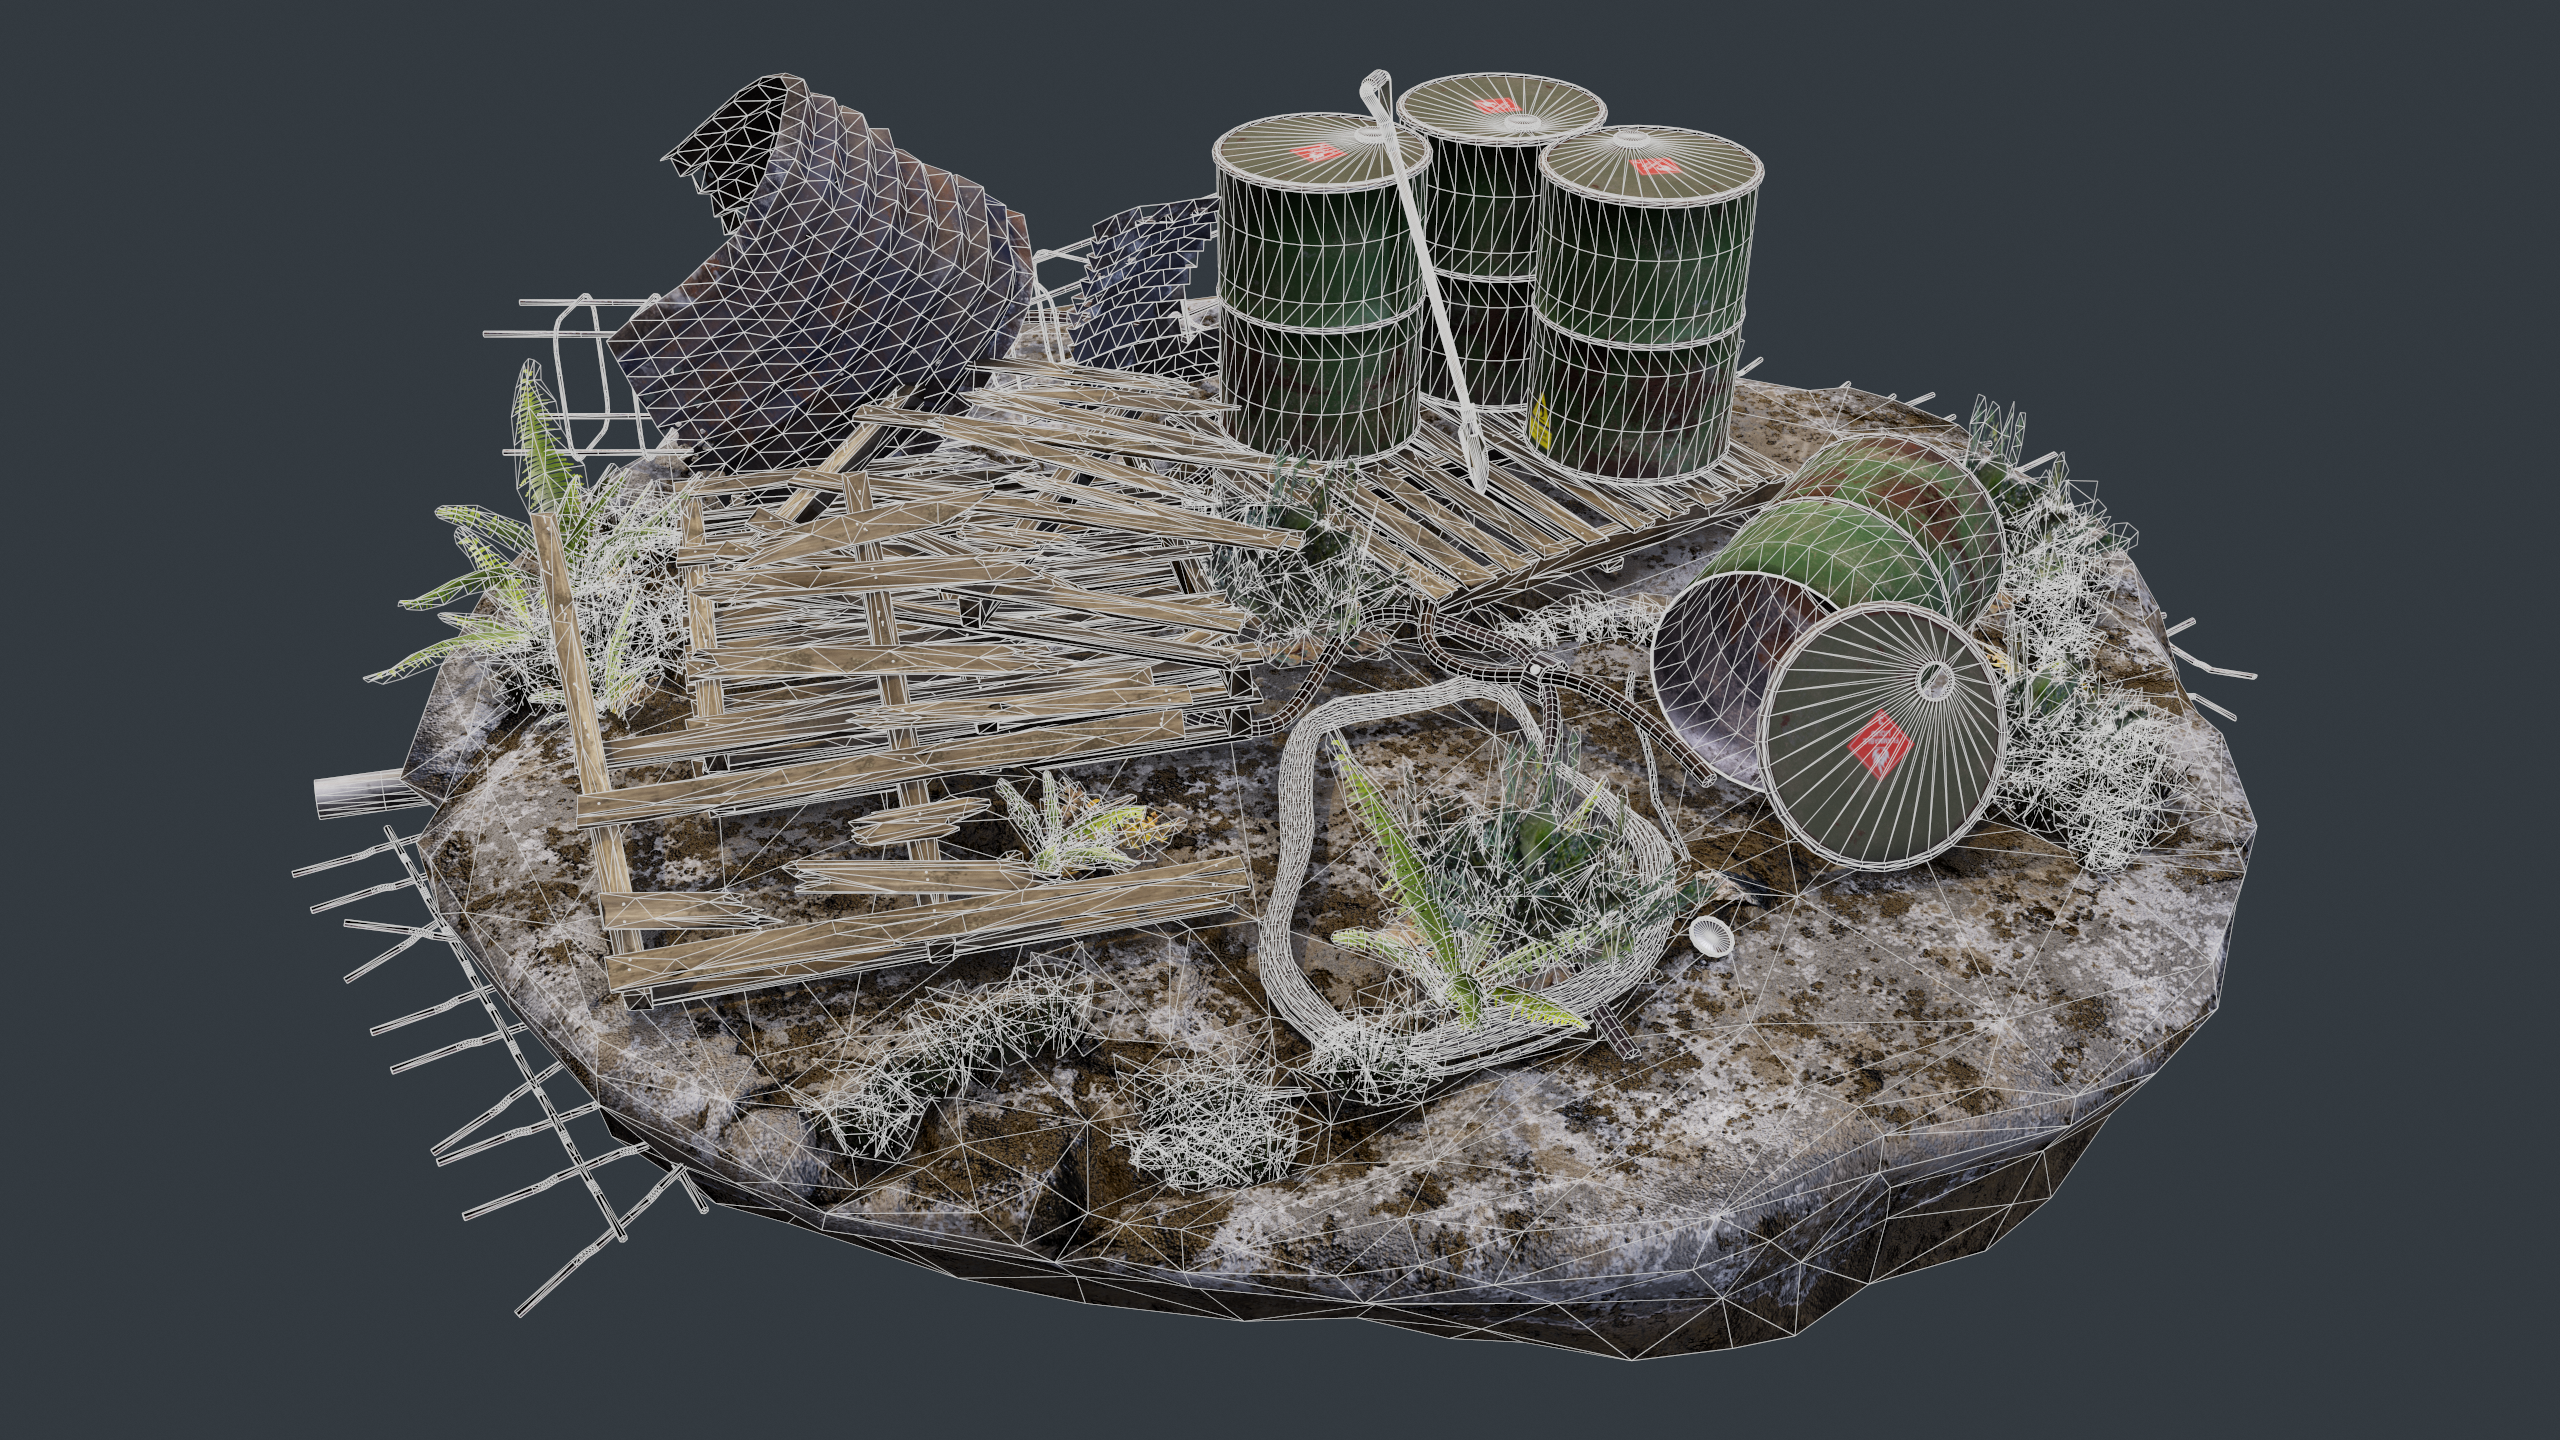 Wireframe shot of the industrial debris scene, rendered in Marmoset Toolbag